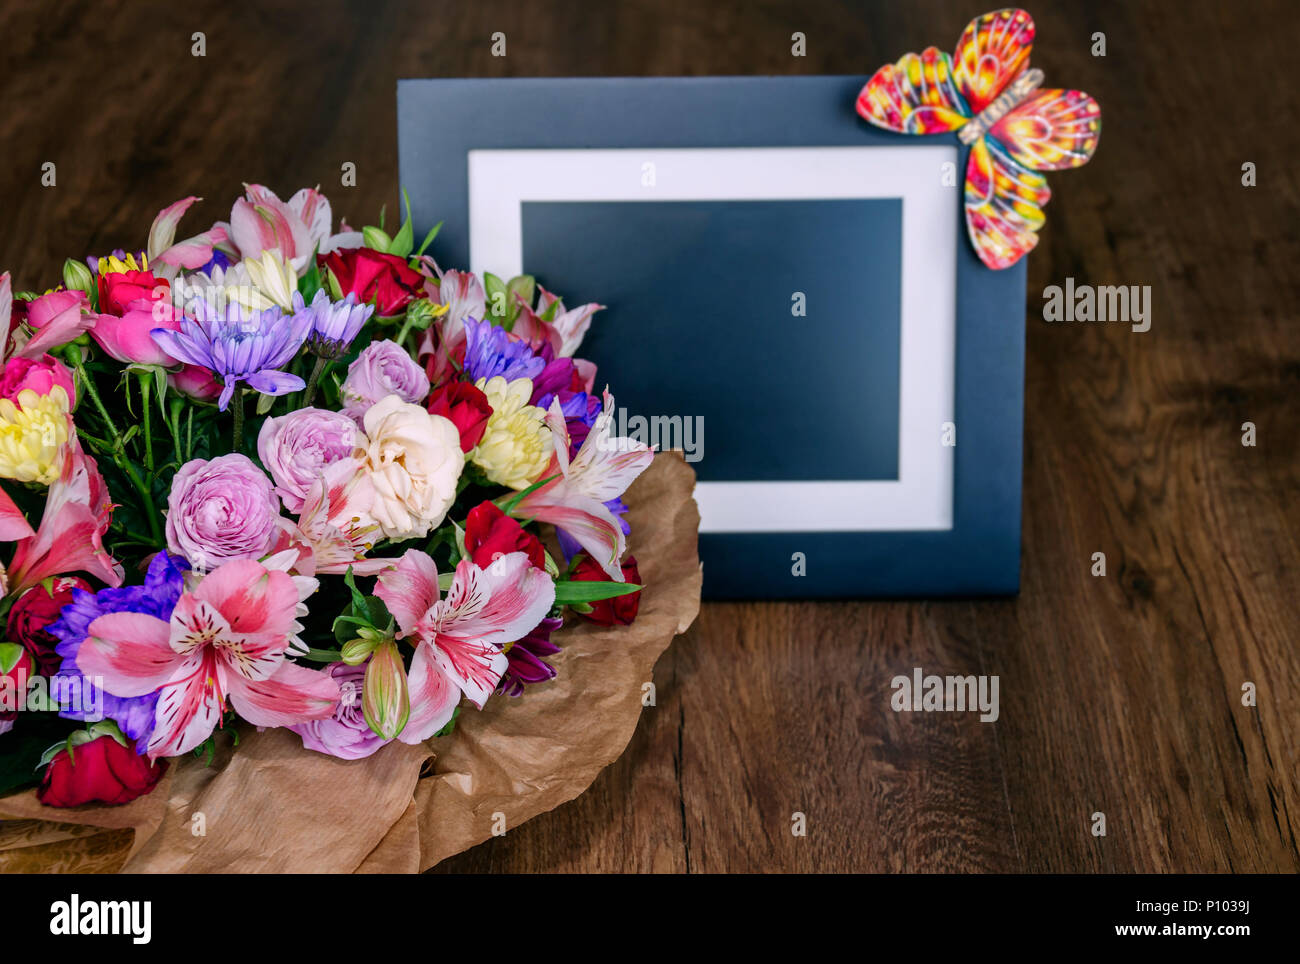 beautiful bouquet with different colors and photo frame on a wooden background. Colorful bouquet of different fresh flowers, close-up Stock Photo